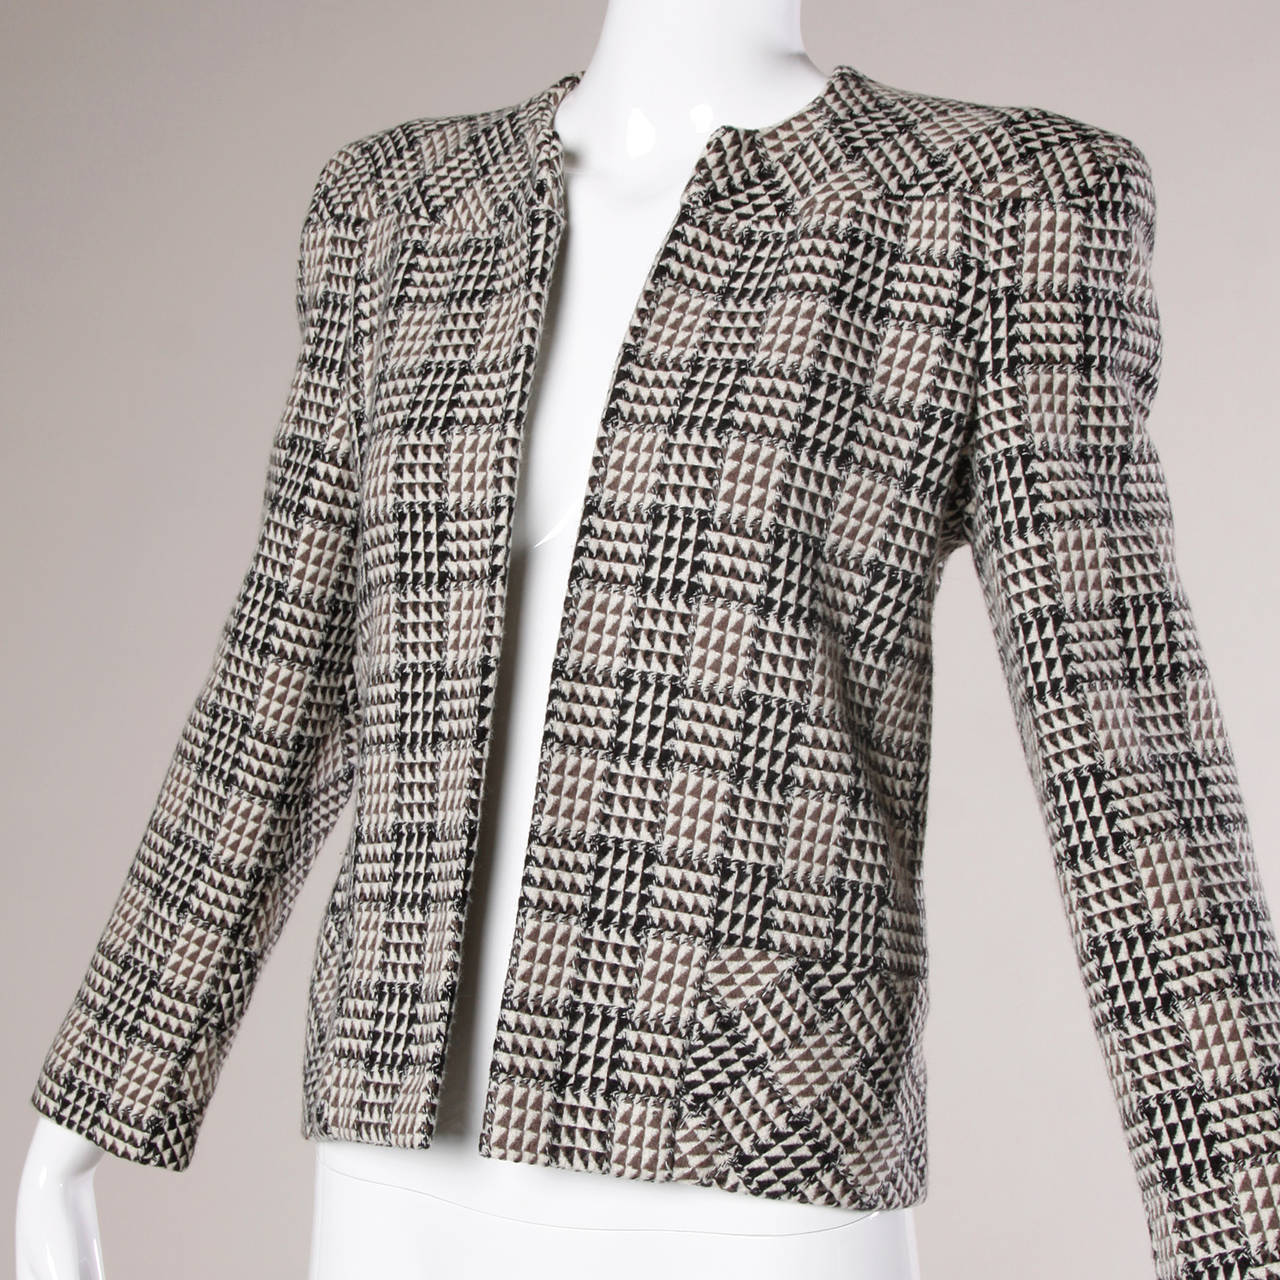 Carolina Herrera Vintage Wool Blazer Jacket with Bold Shoulders In Excellent Condition For Sale In Sparks, NV